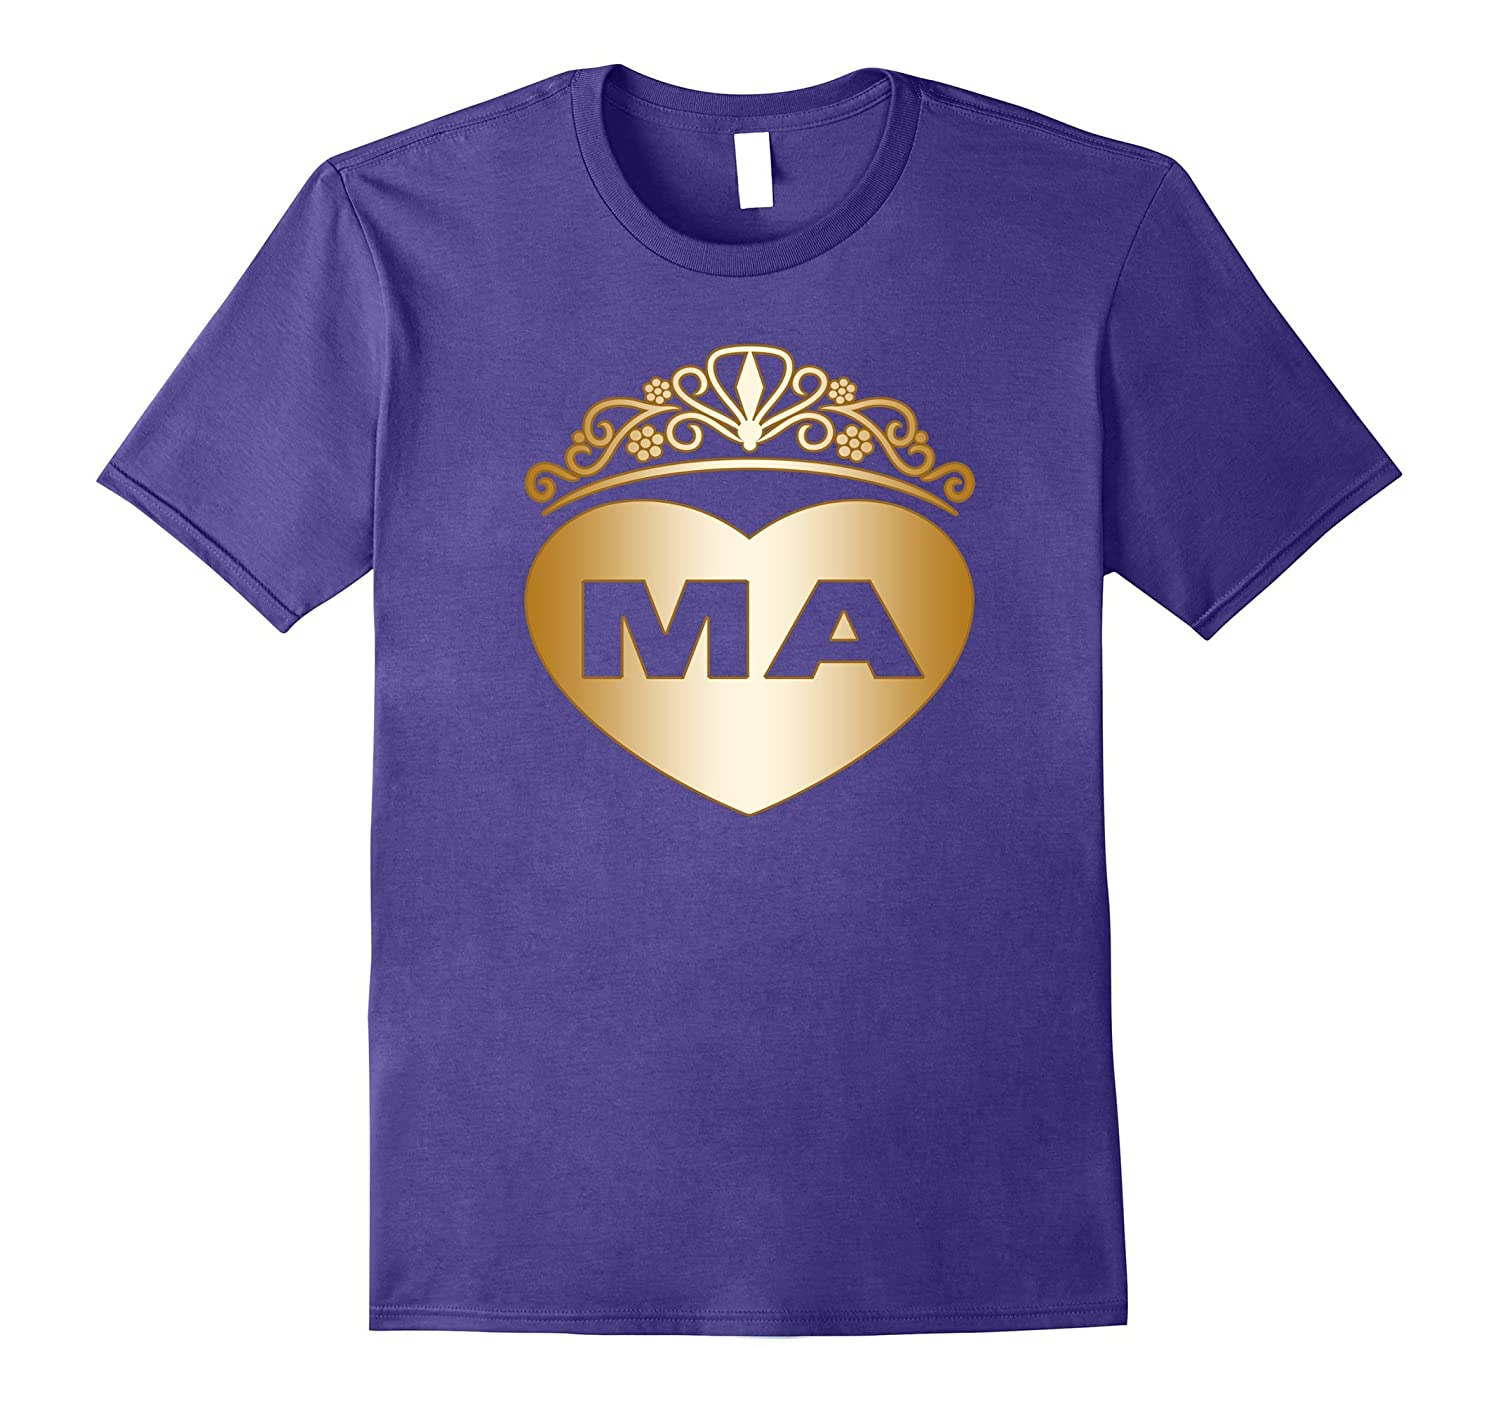 Best Tee-Shirt Gift for Ma from Son or Daughter-PL